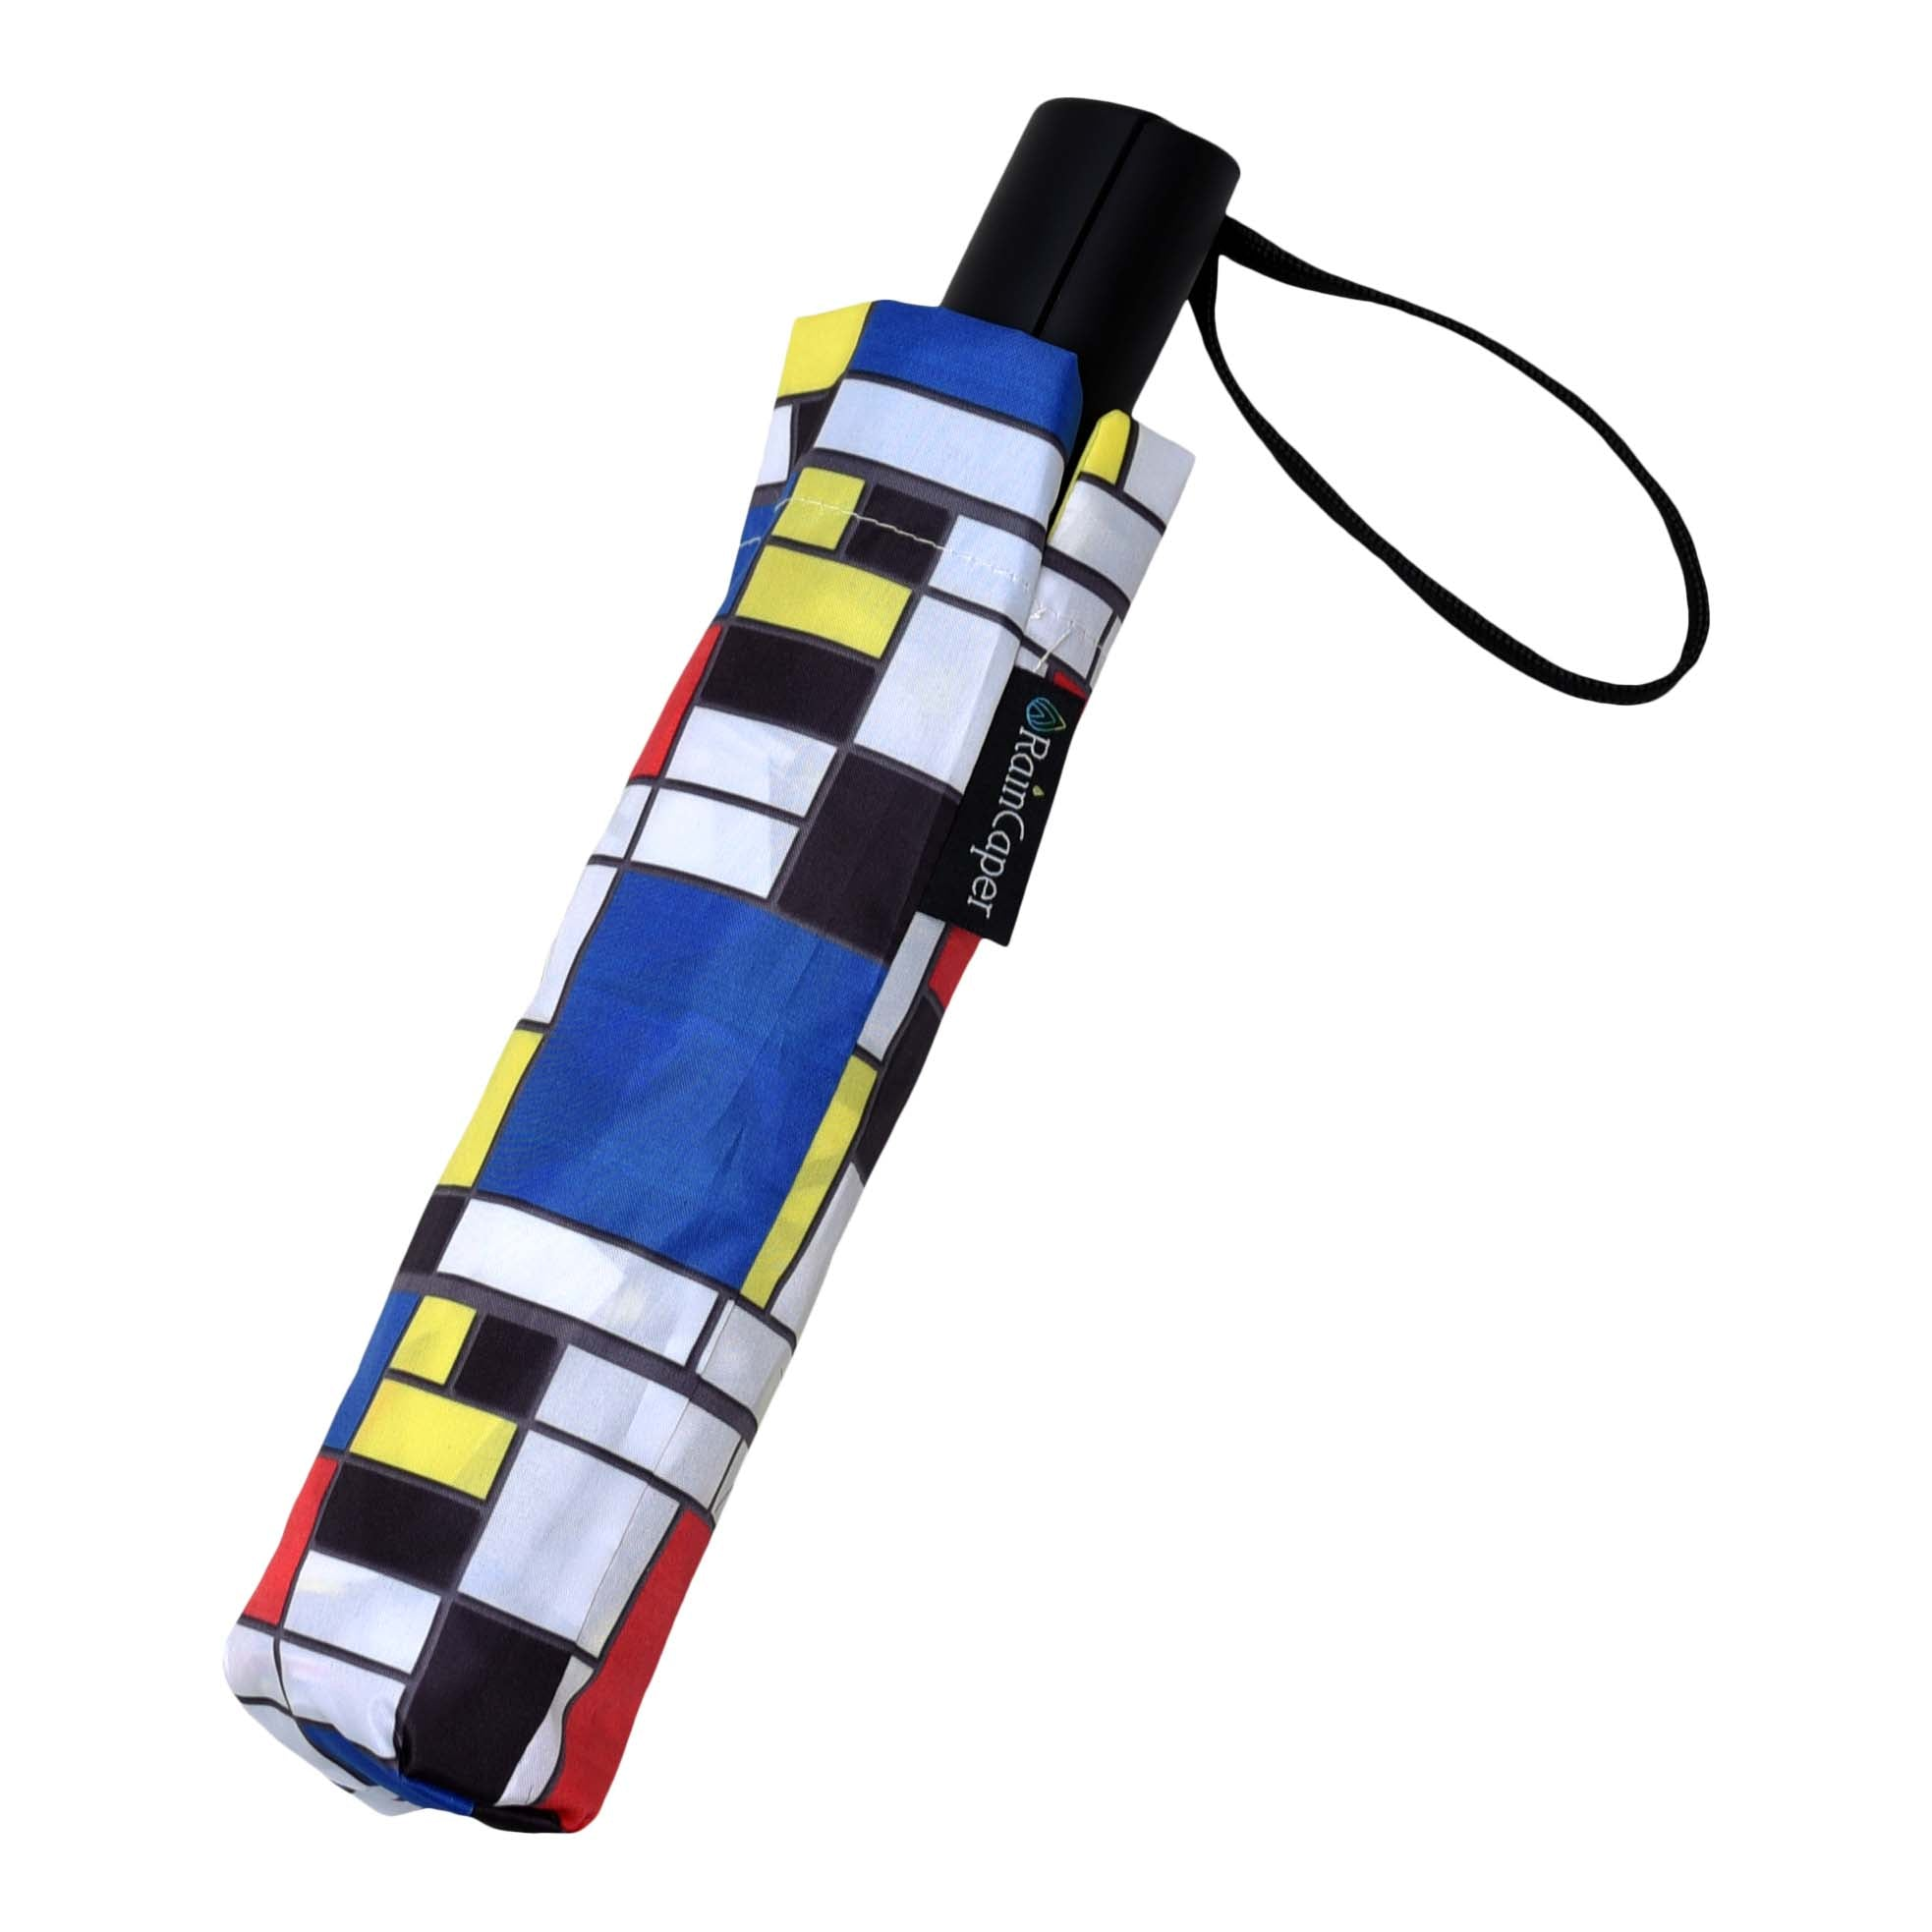 Image of a RainCaper Mondrian Composition II traveling umbrella shown both open and closed